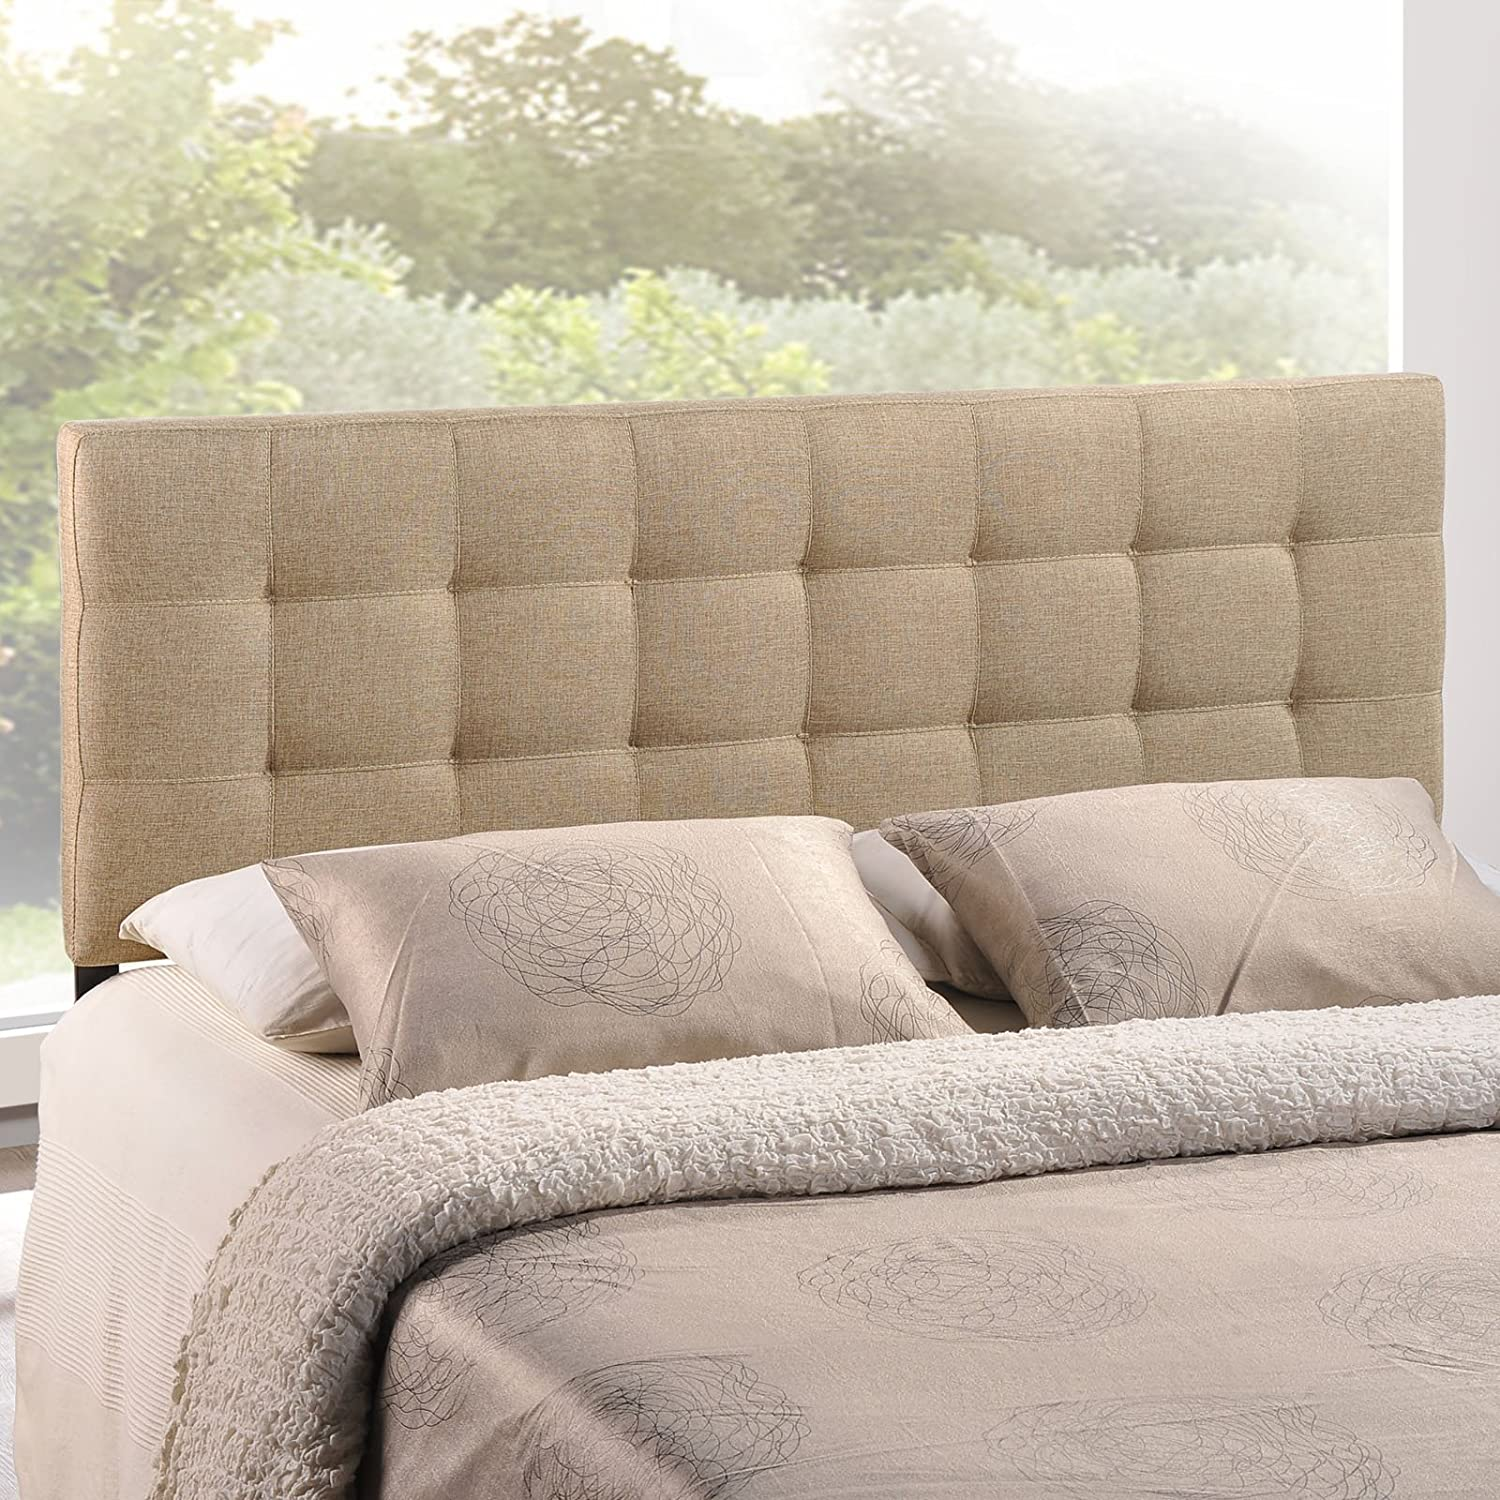 knight tufted shipping headboards home headboard adjustable fabric today garden christopher queen product cheap bolton by free full overstock